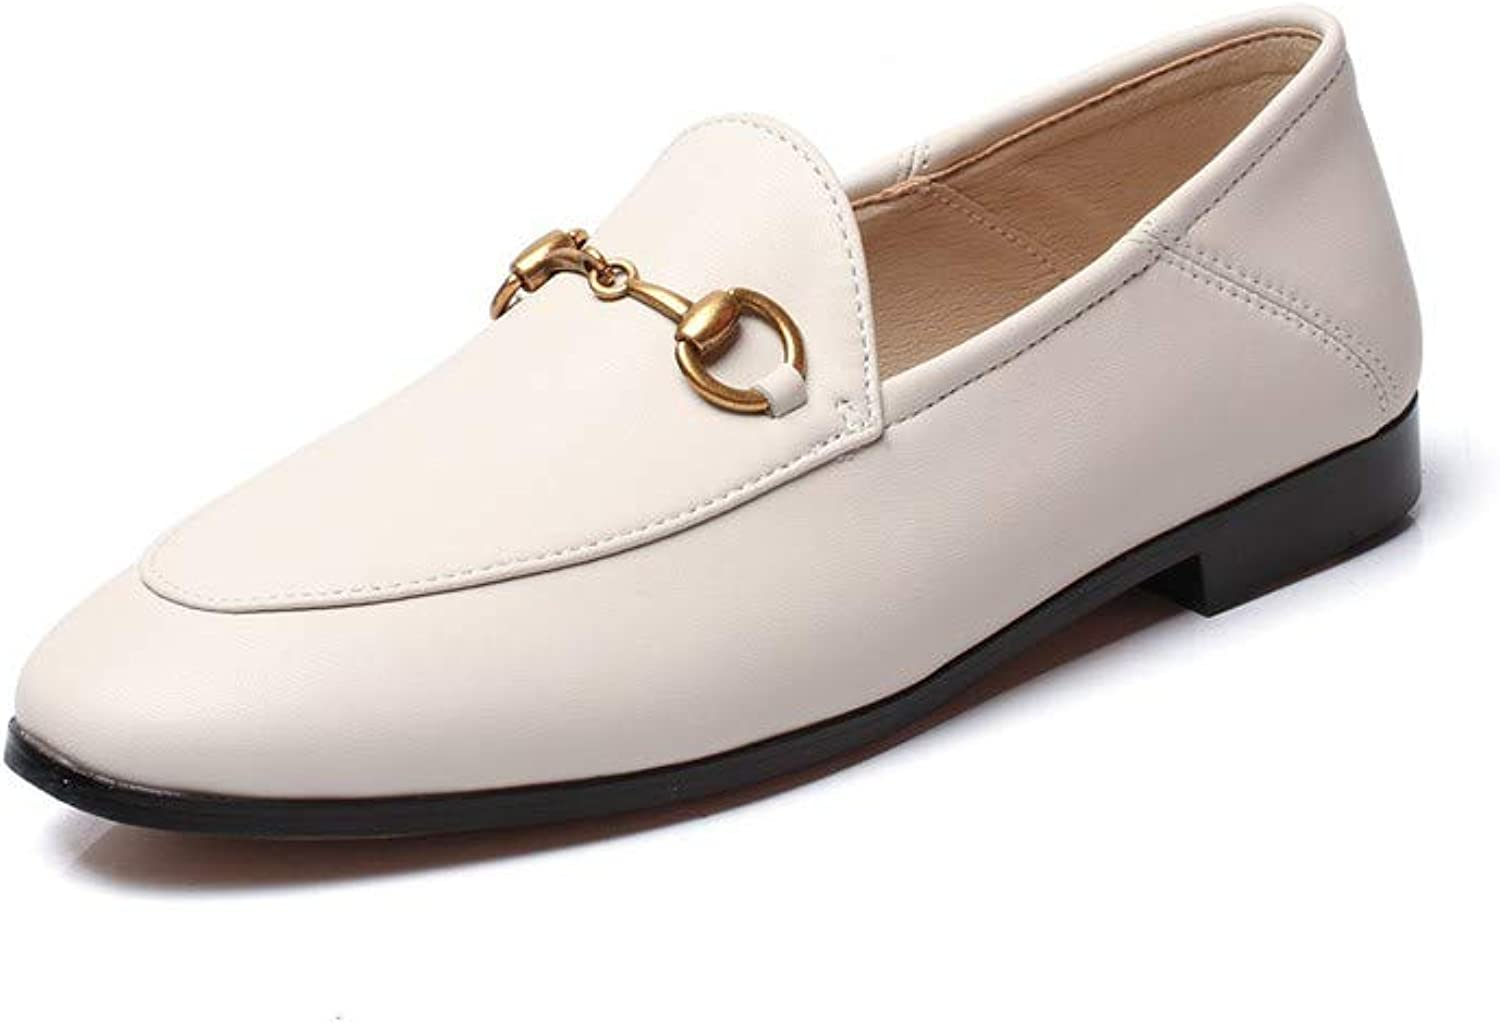 Pophight Womens Leather Oxford Backless Slipper Slip-ons Loafer shoes Beige